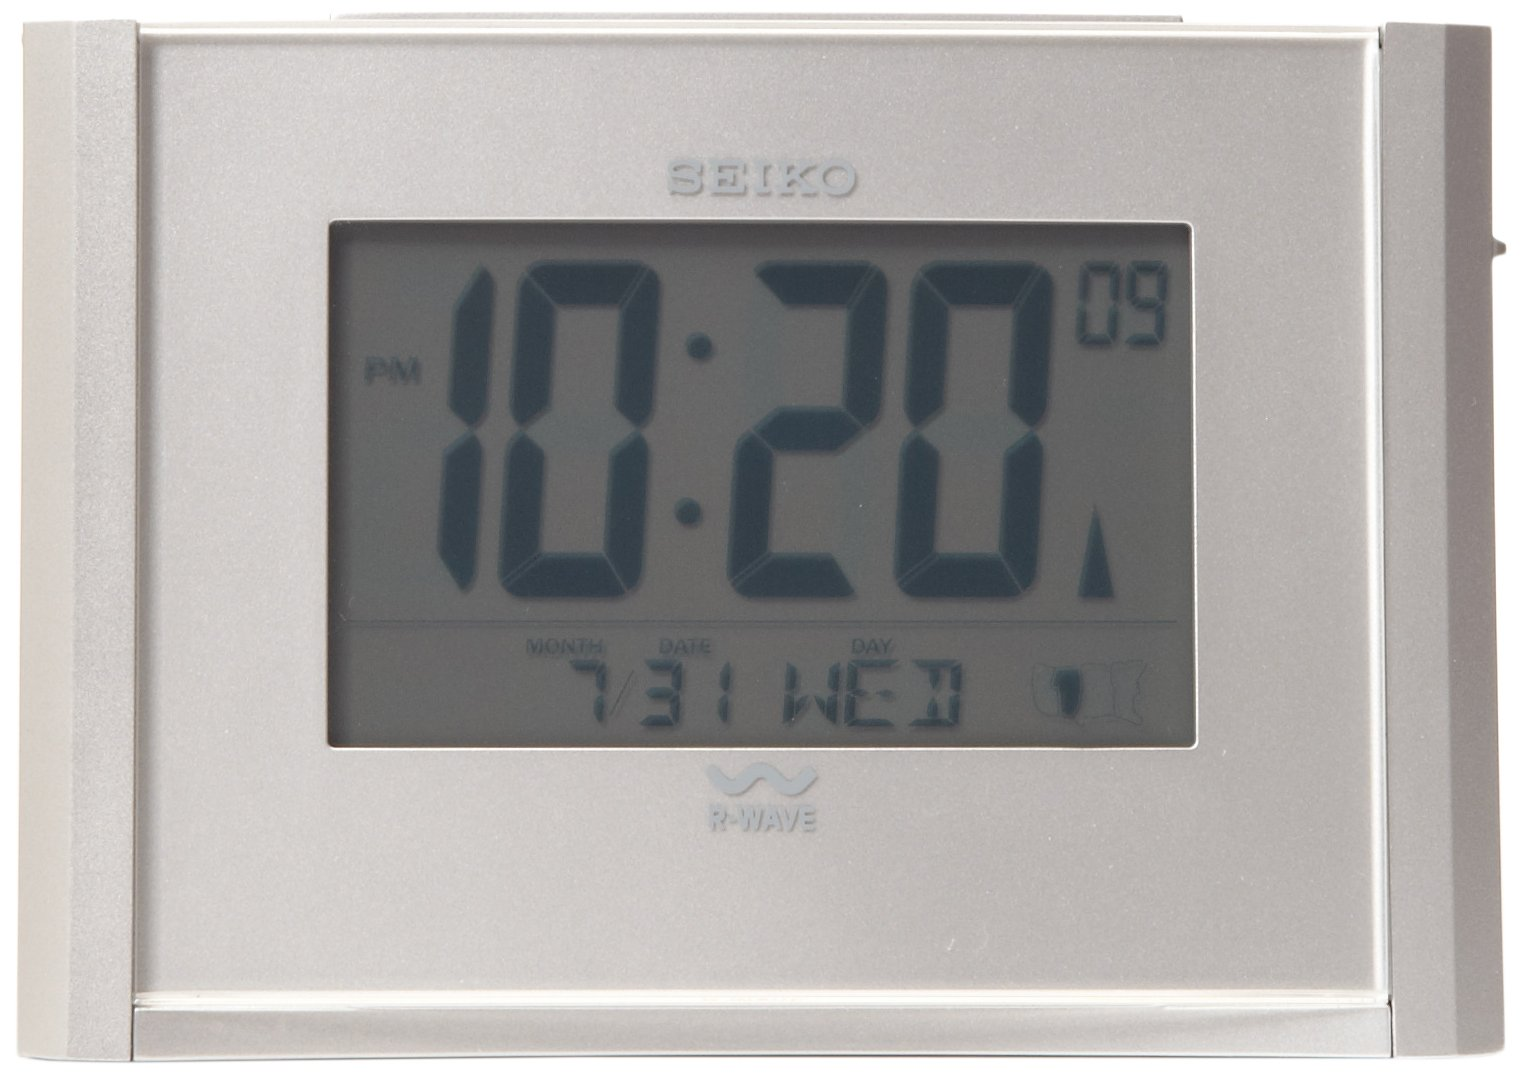 Seiko Advanced Technology Bedside Alarm Get Up and Glow Clock by Seiko